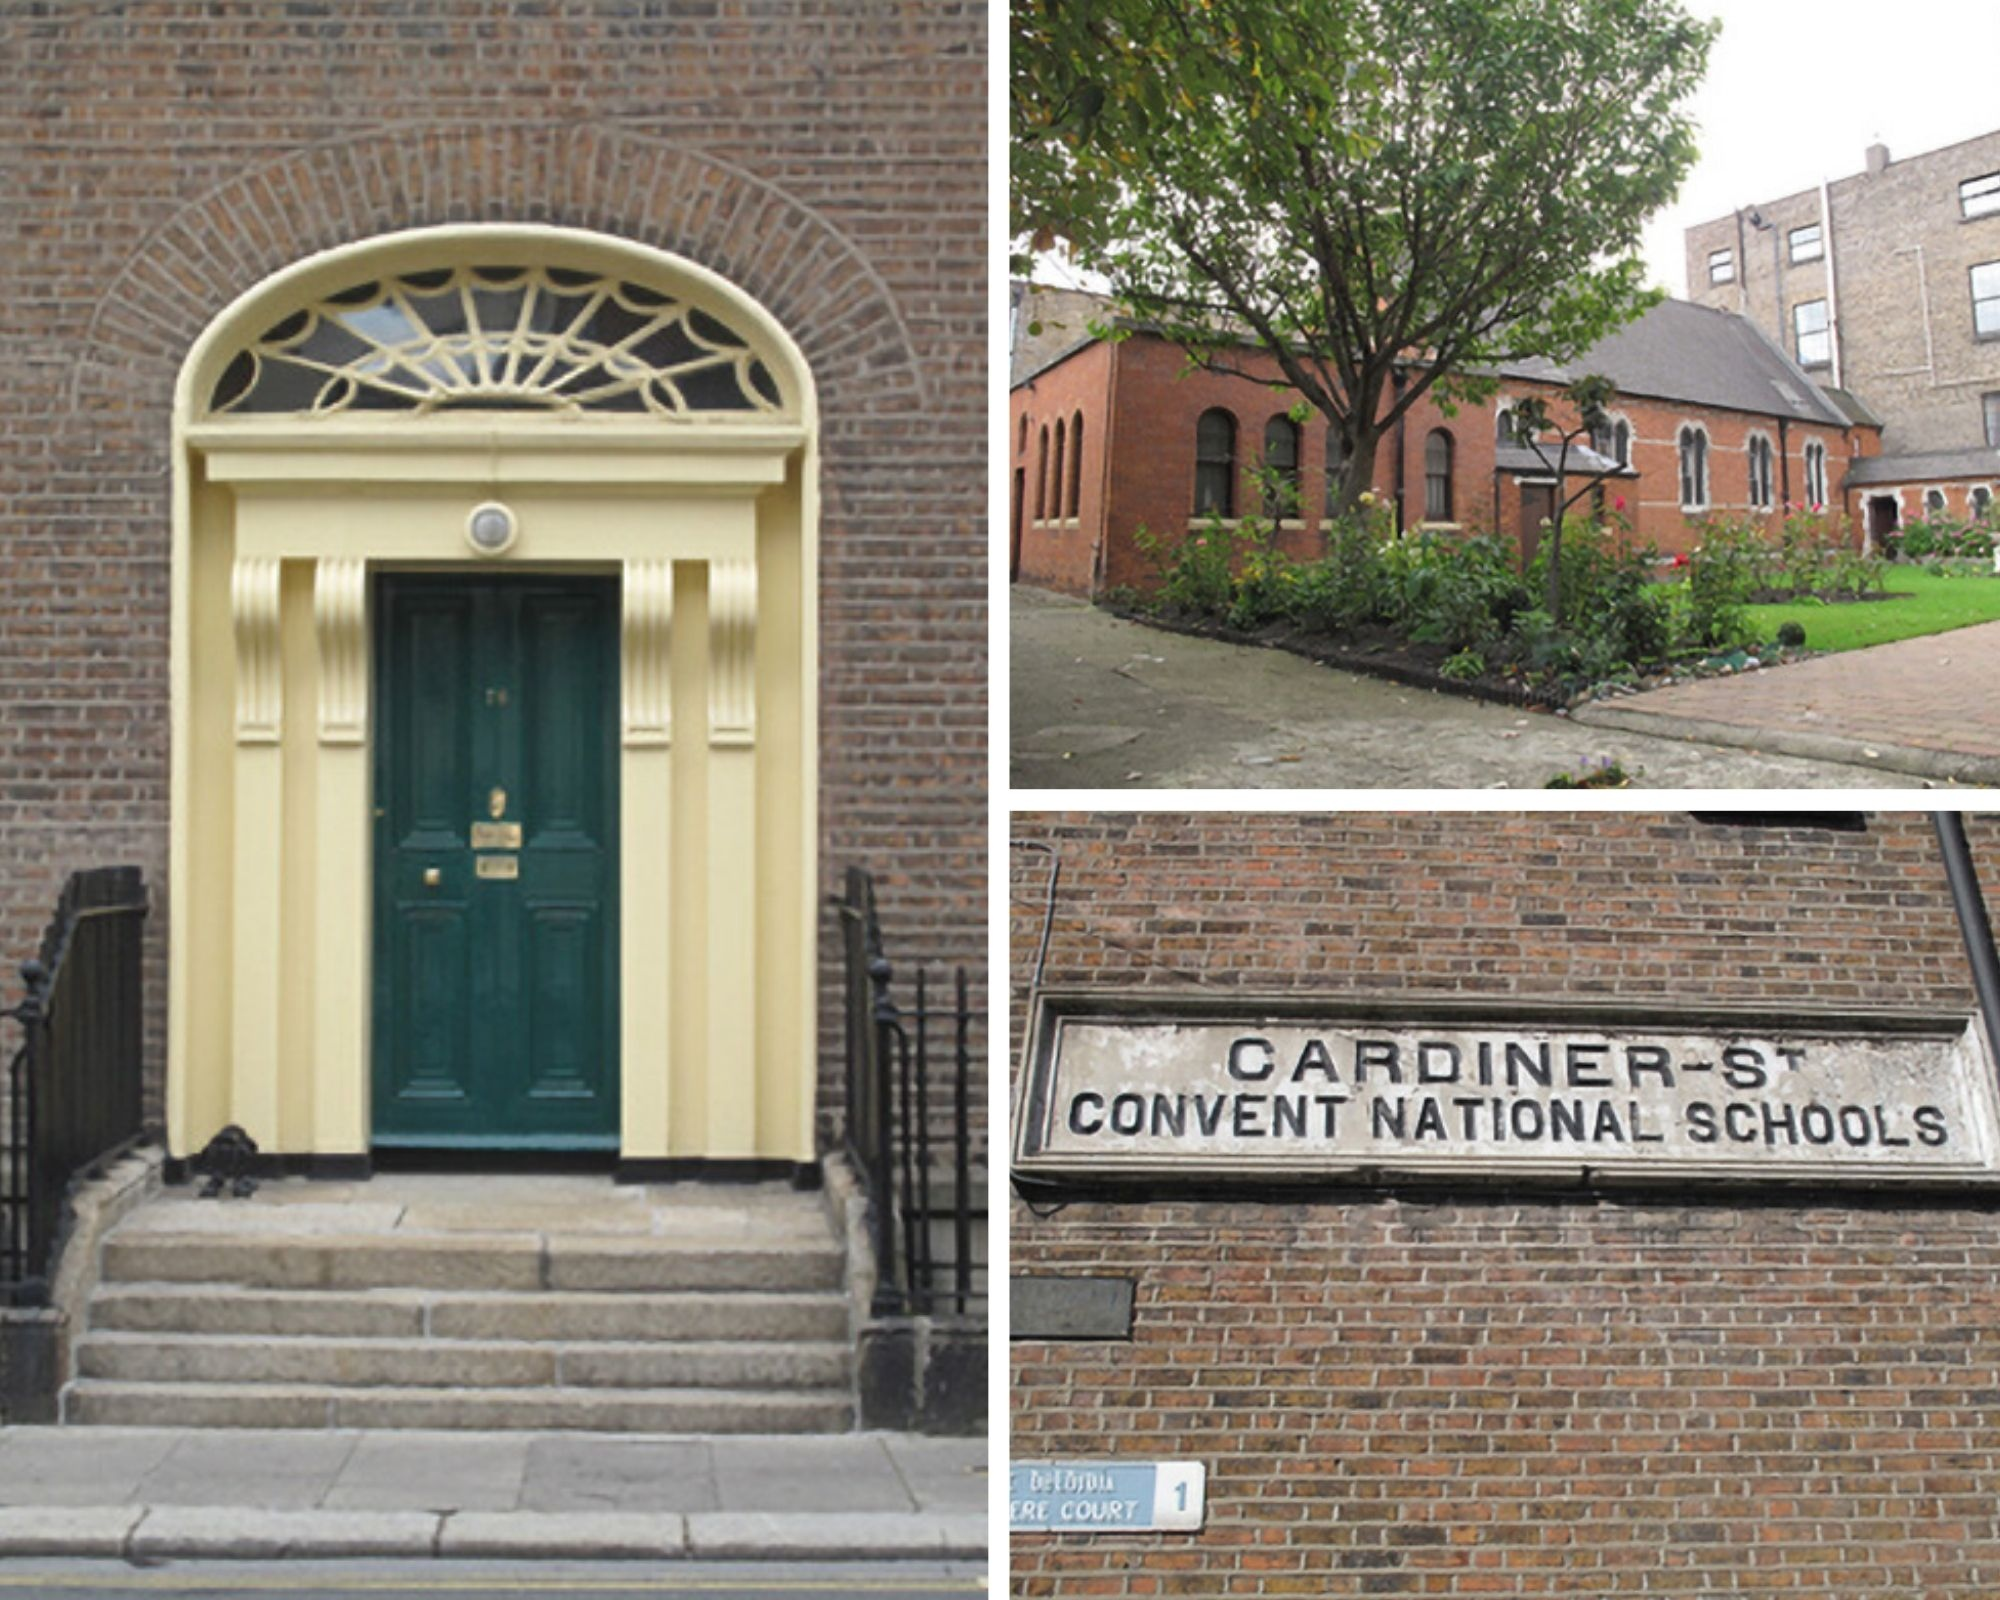 Three pictures of the Gardiner Street Convent